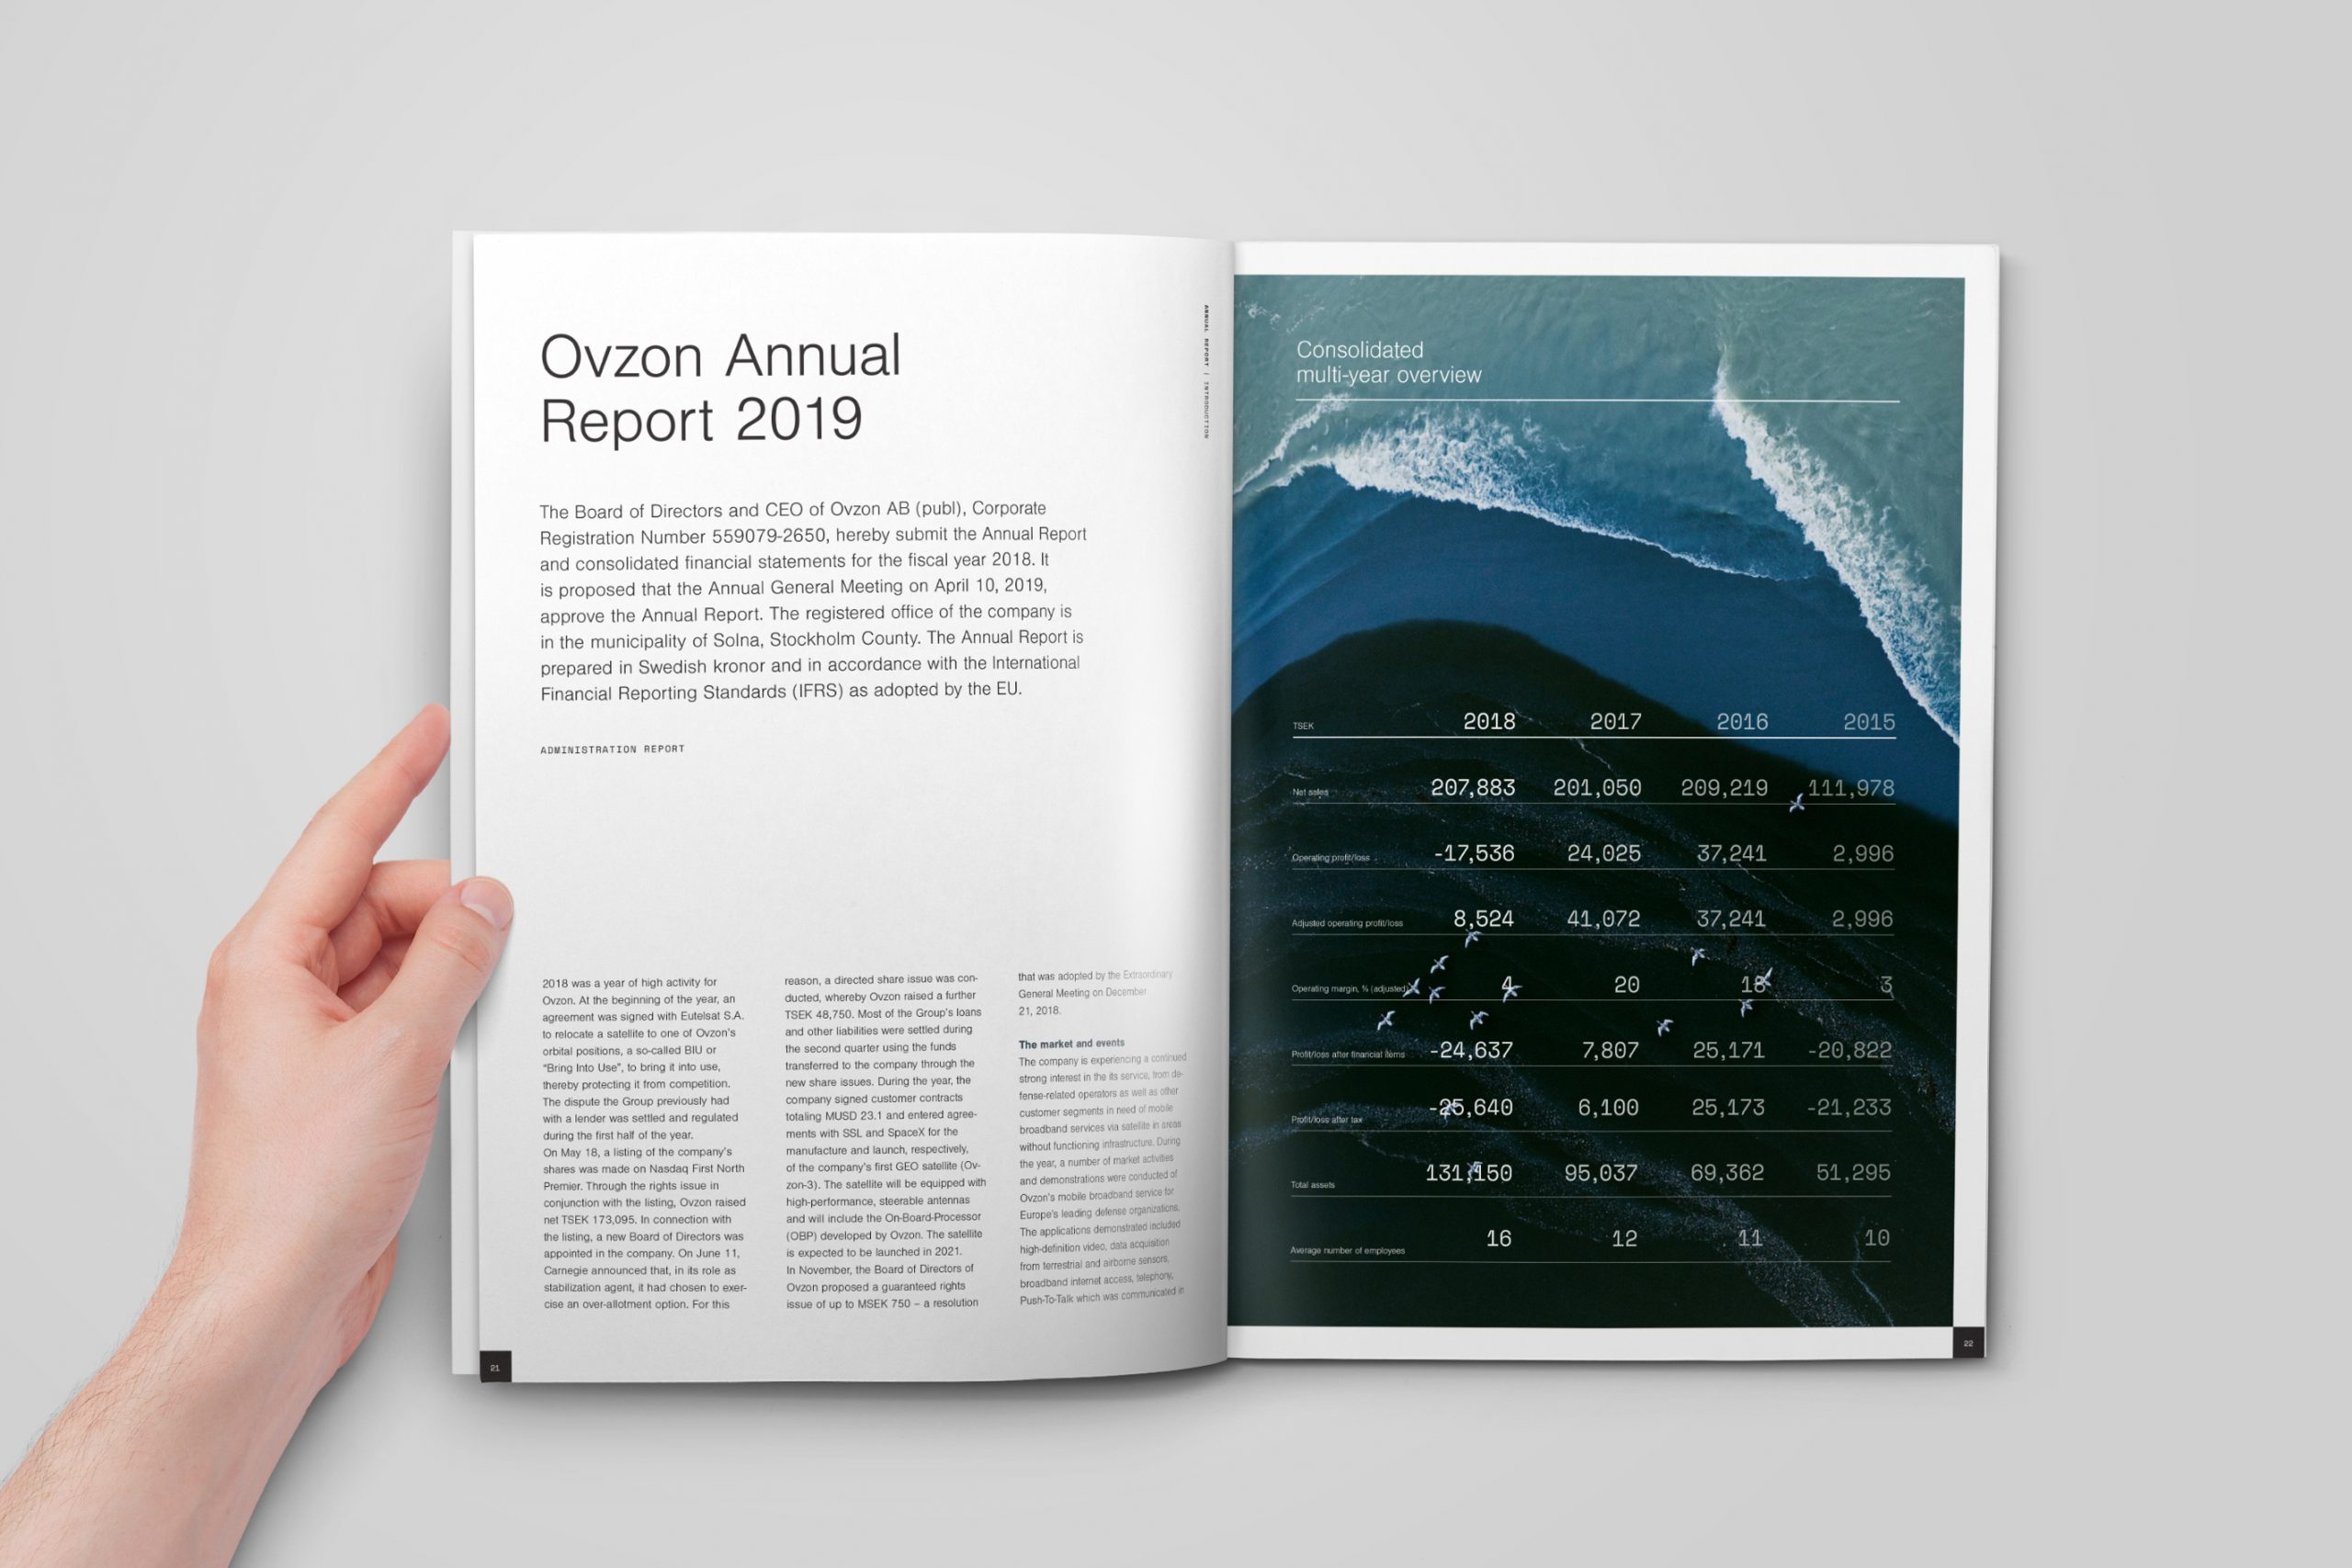 Ovzon_Annual_Report